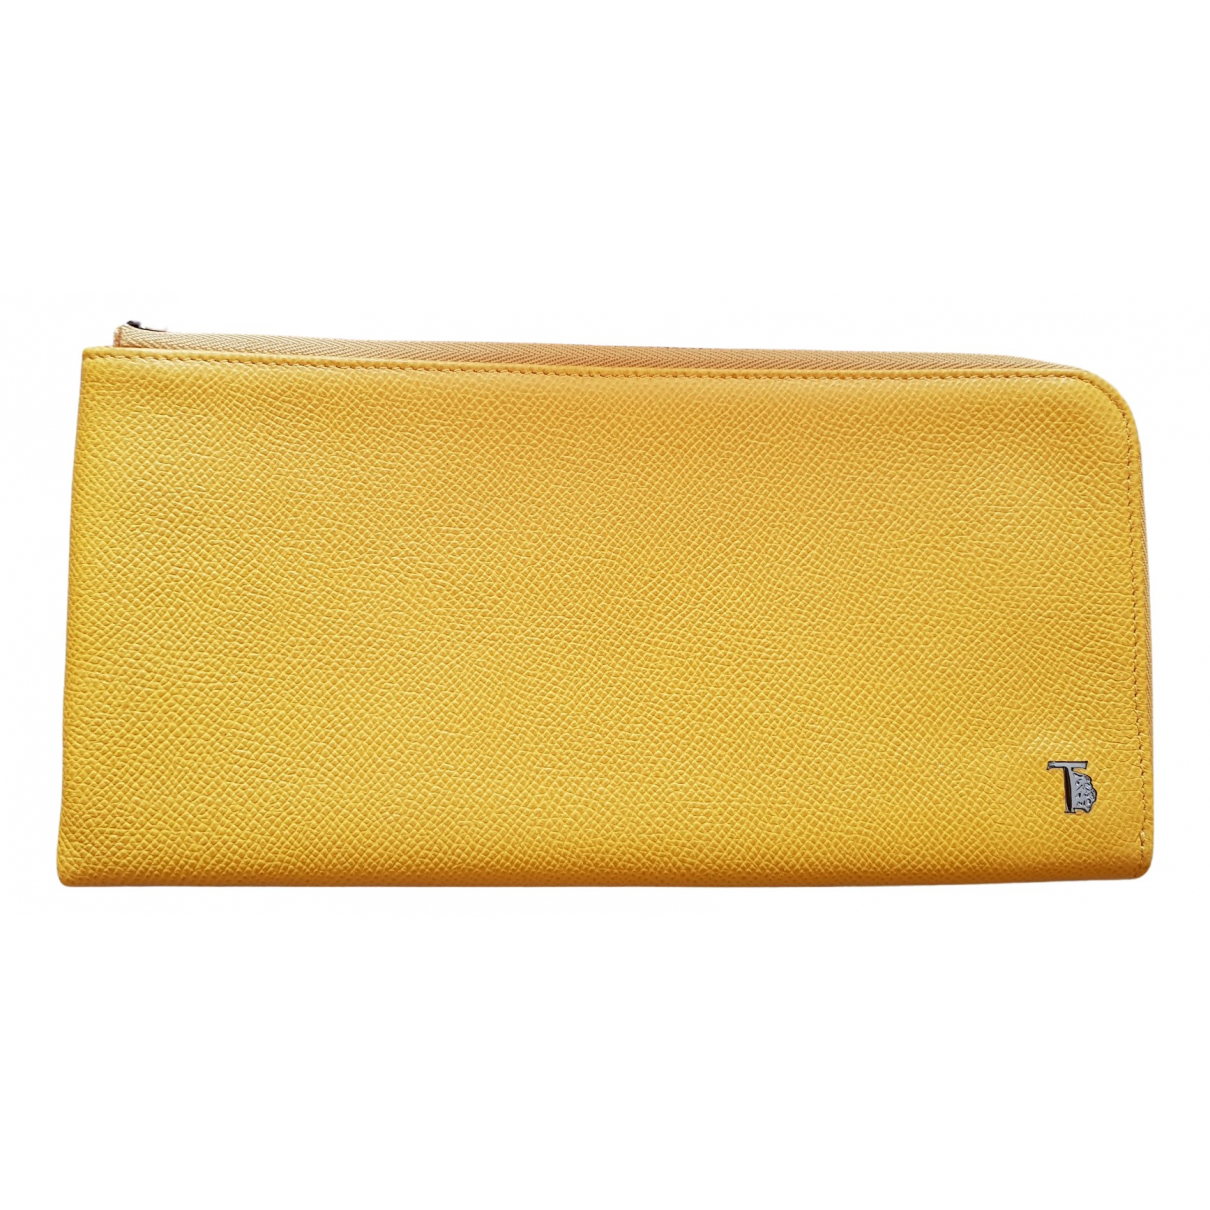 Tods N Yellow Leather Small bag, wallet & cases for Men N